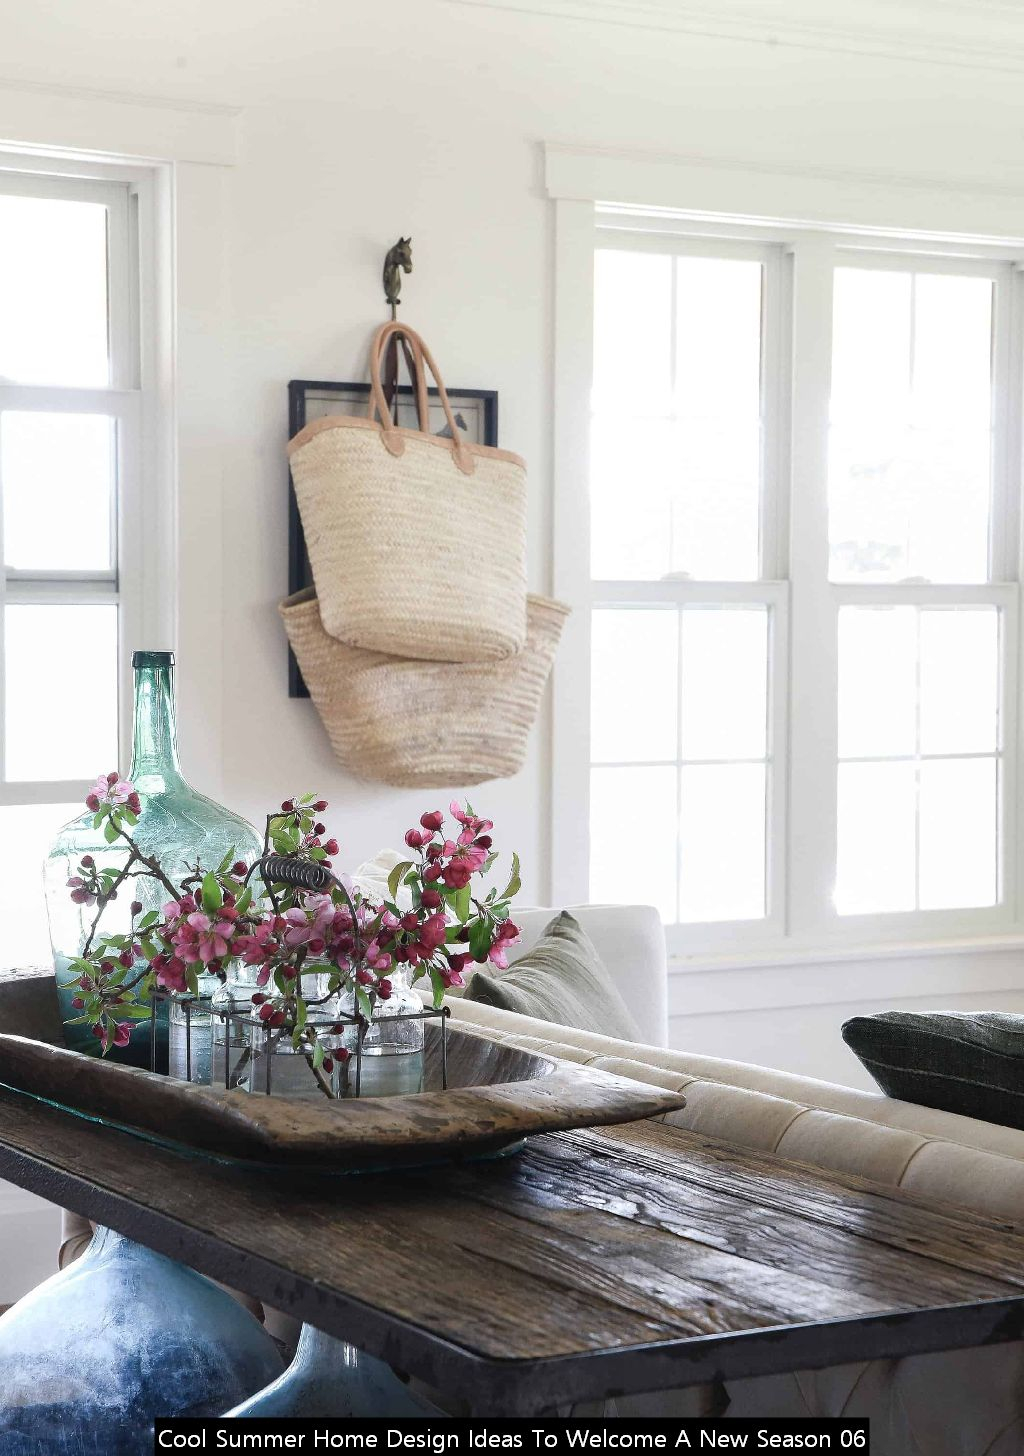 Cool Summer Home Design Ideas To Welcome A New Season 06